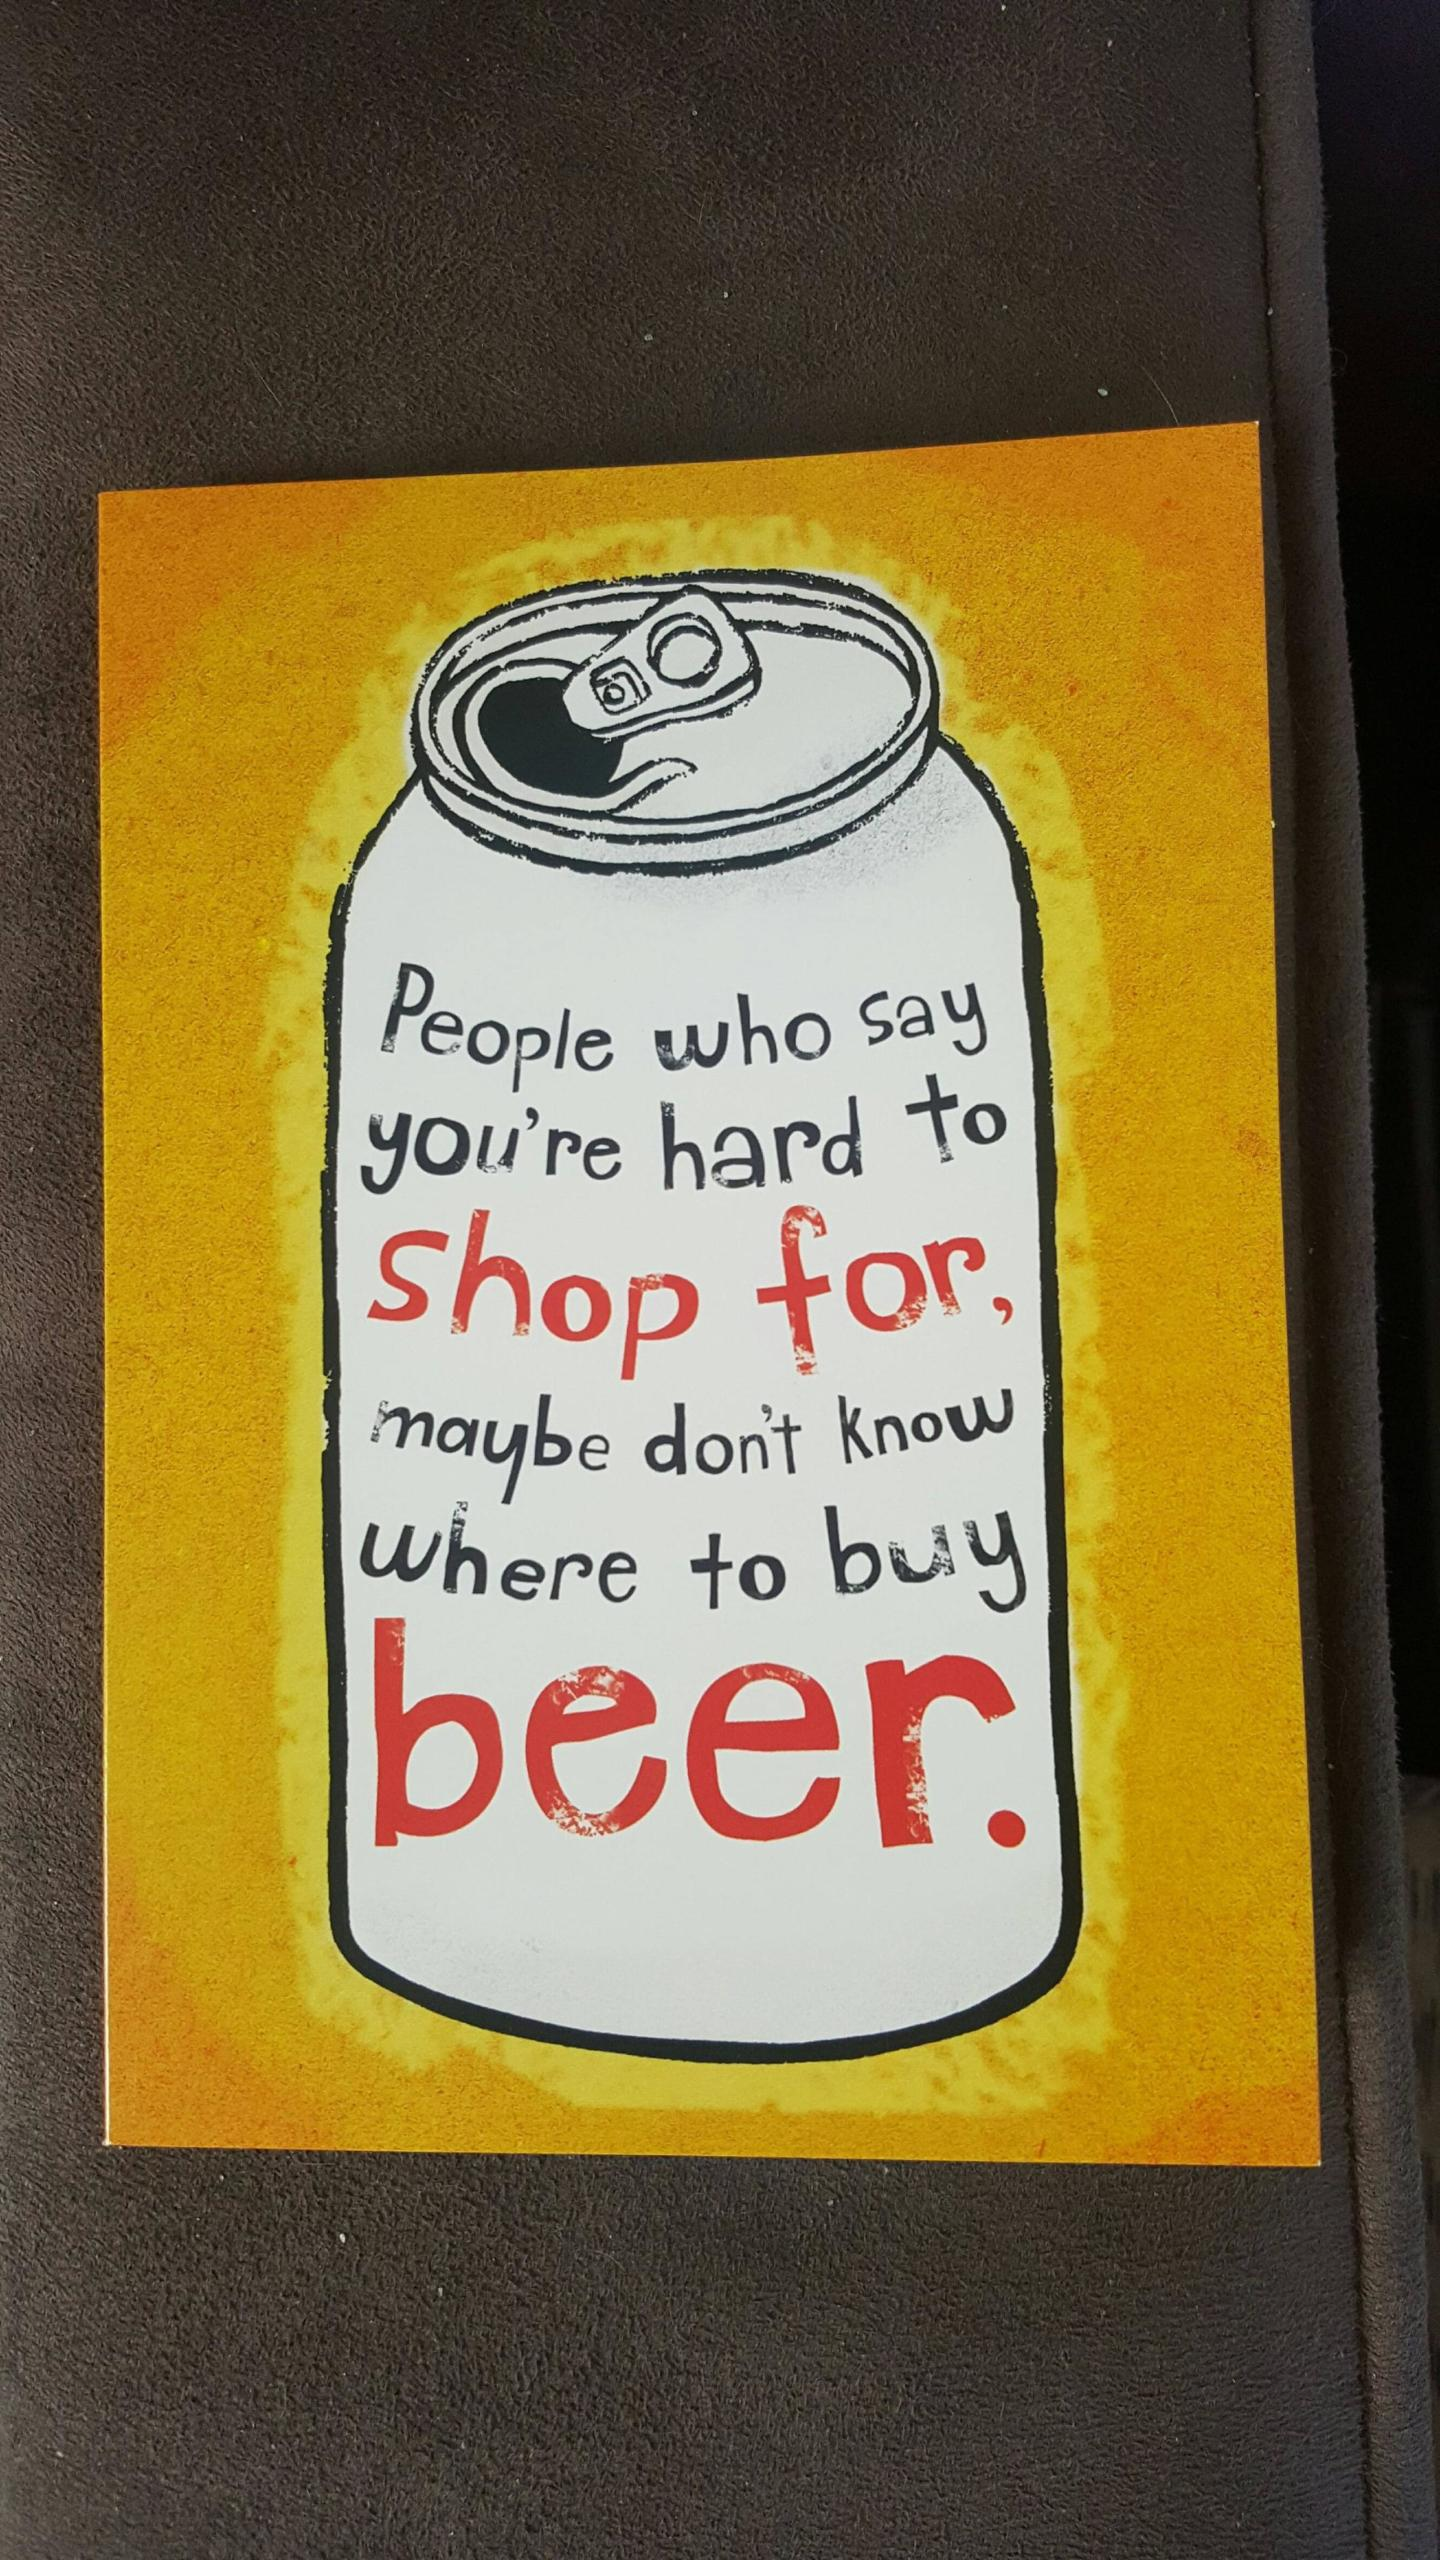 People who say you're hard to shop for, maybe don't know where to buy beer.